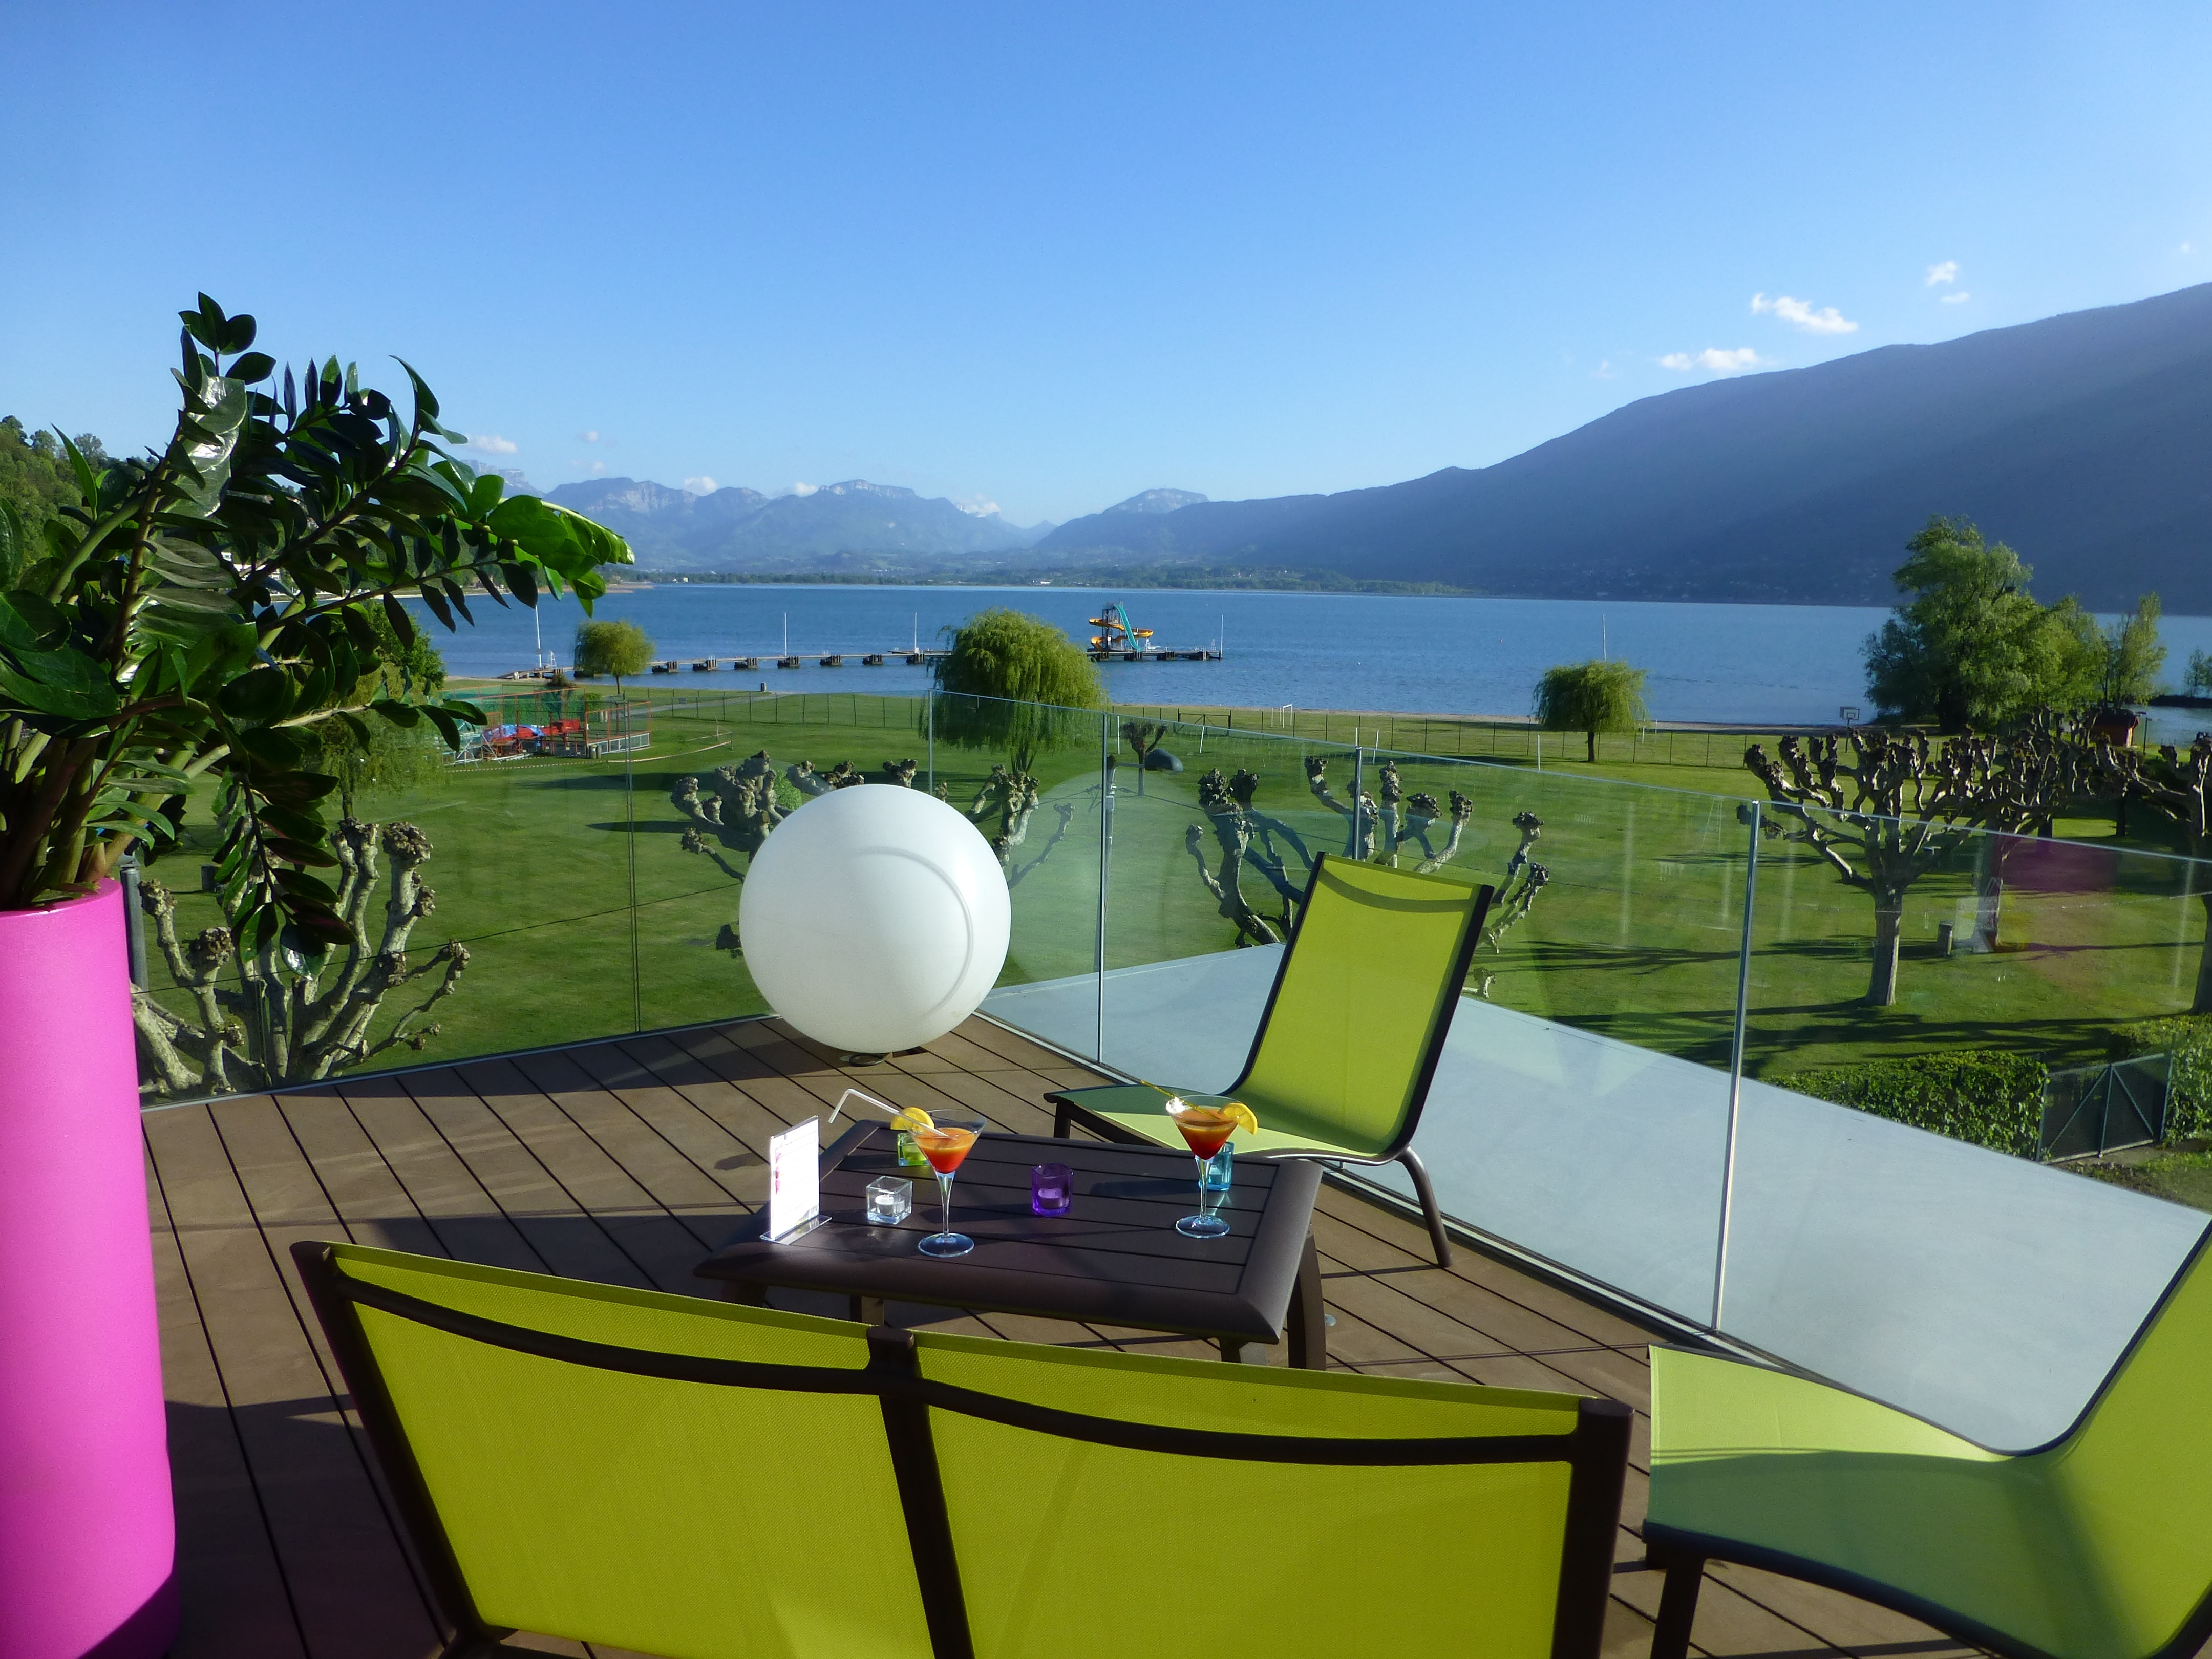 Brooking Hotel Restaurant Spa Lac Du Bourget